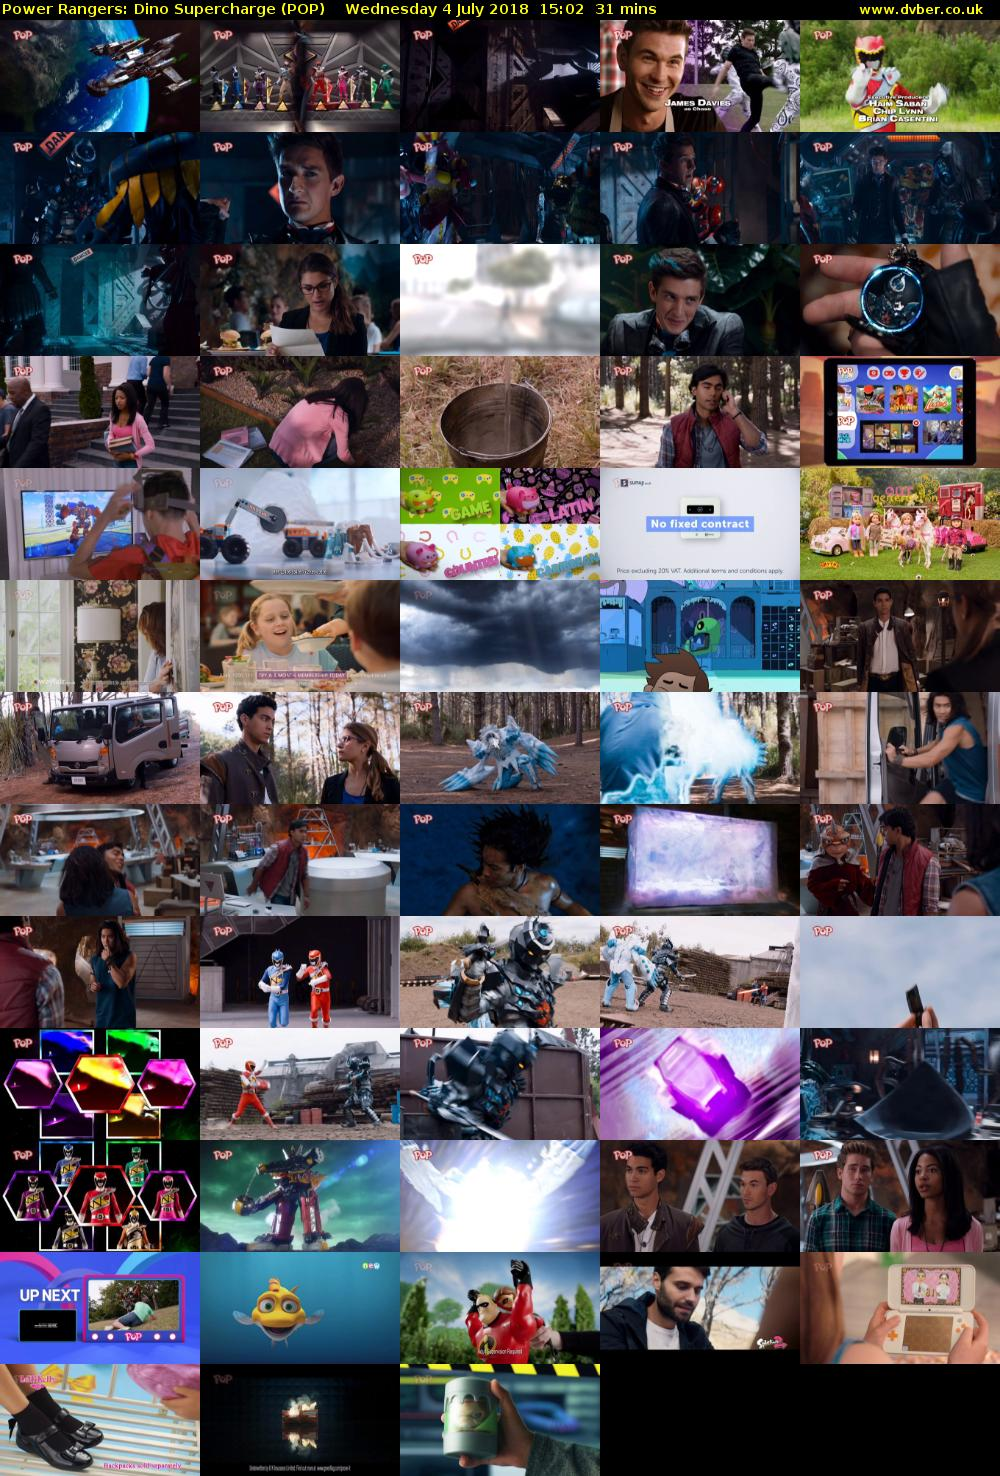 Power Rangers: Dino Supercharge (POP) Wednesday 4 July 2018 15:02 - 15:33